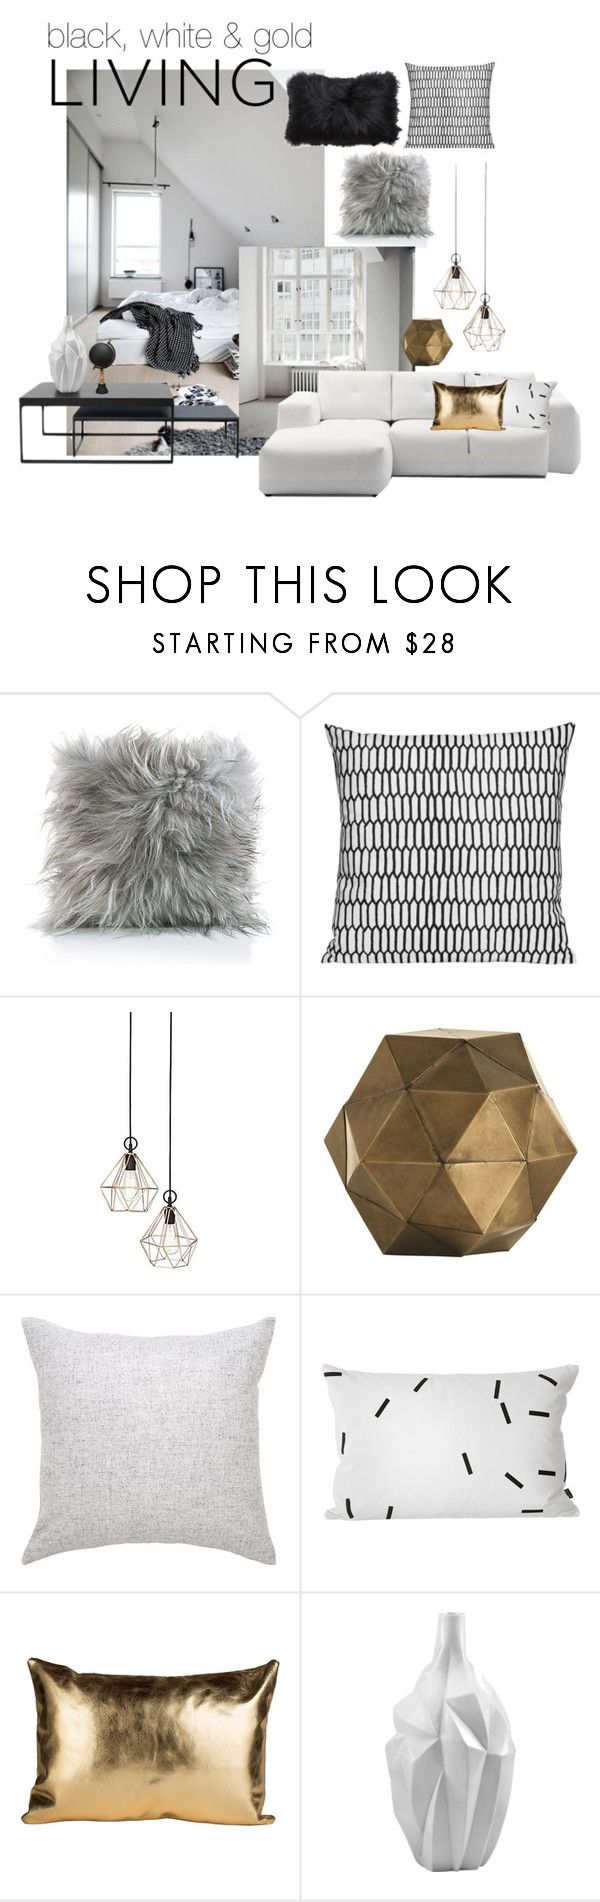 """BLACK, WHITE & GOLD"" by mimiih ❤ liked on Polyvore featuring interior, interiors, interior design, home, home decor, interior decorating, Arteriors, Cyan Design, Jamie Young and bedroom"